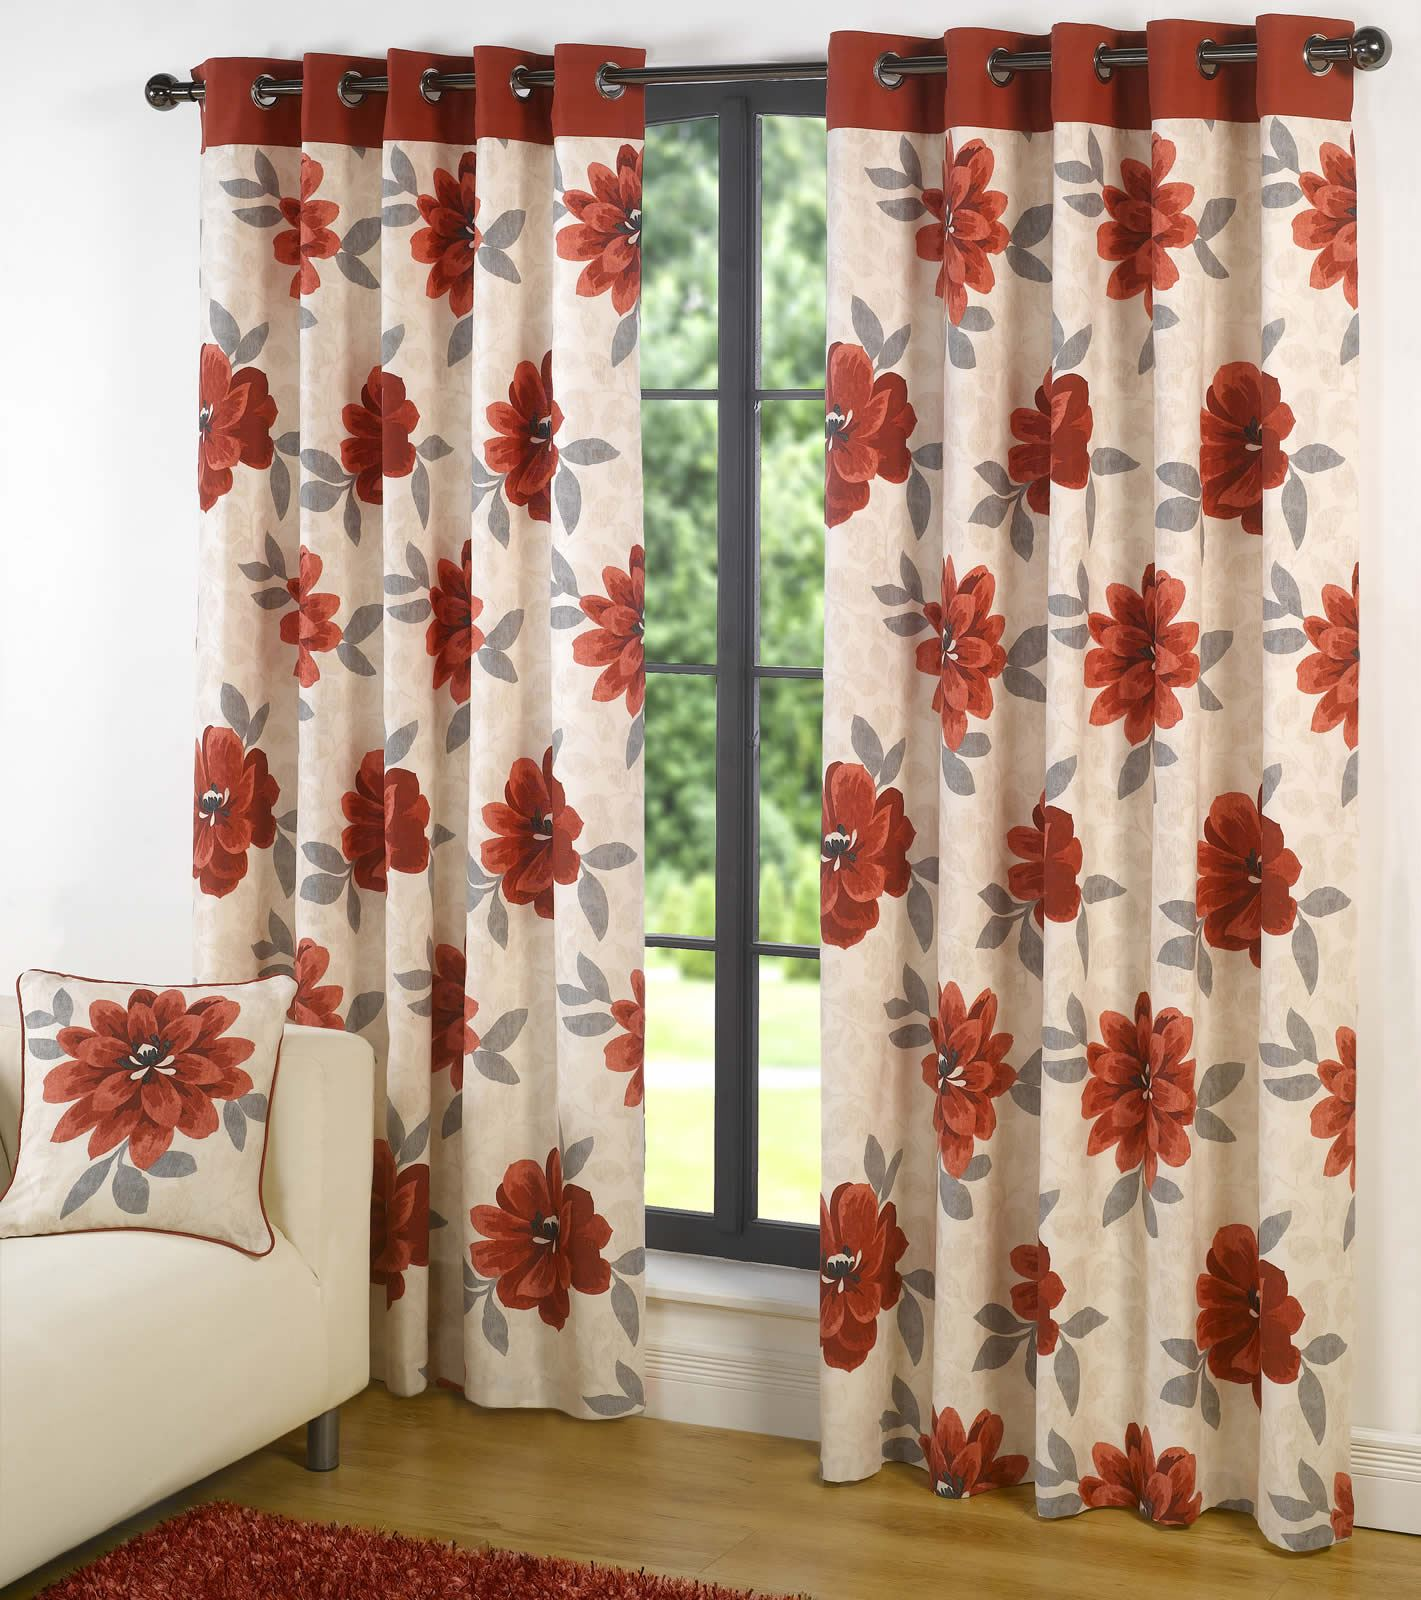 Annabella Lined Eyelet Curtains Ready Made Ring Top Floral